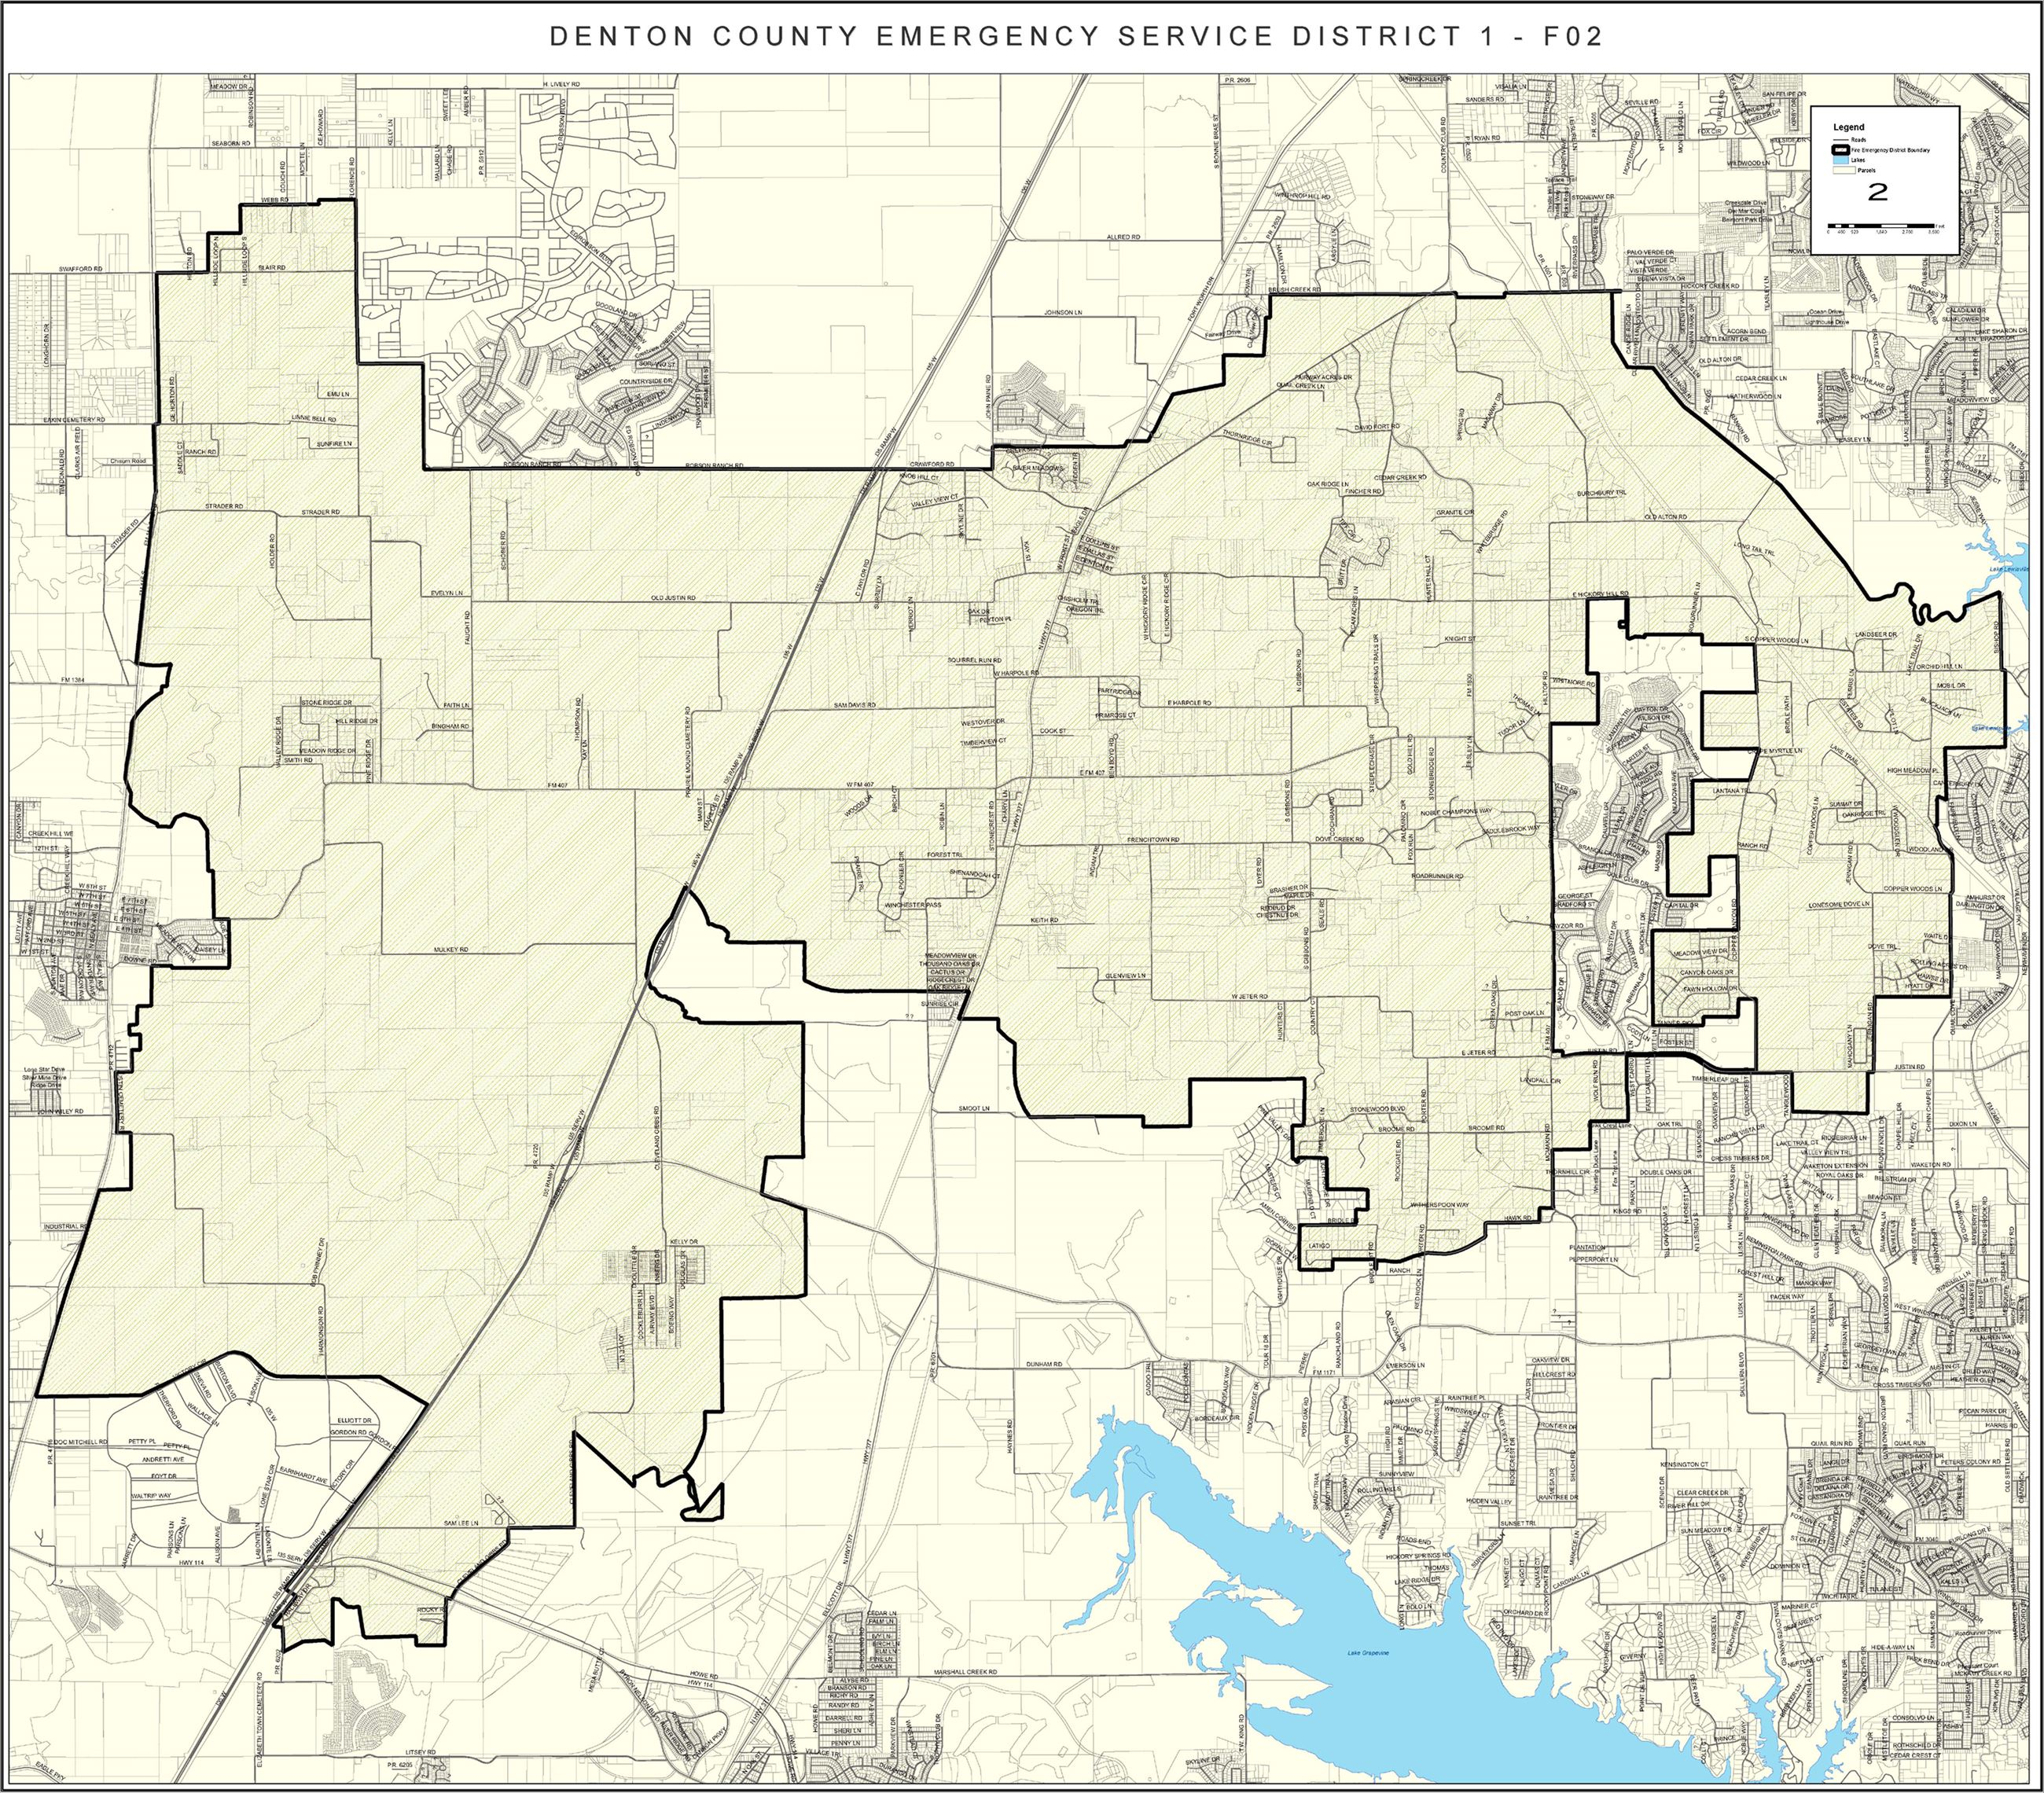 Map of Denton County Emergency Services Division Number 1